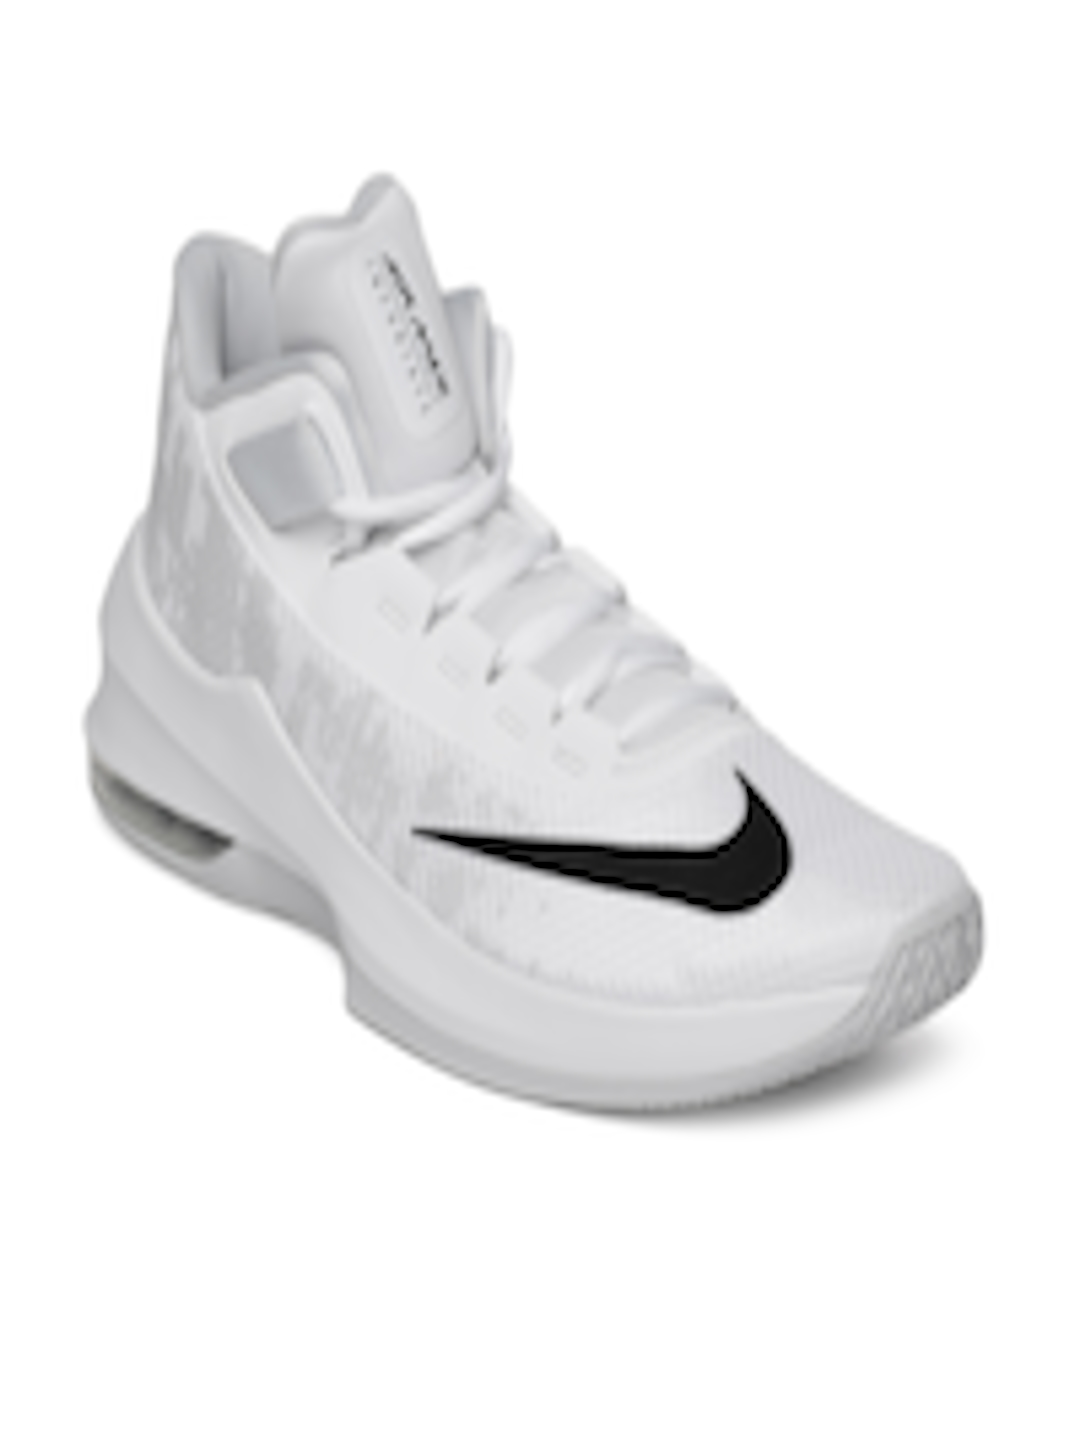 photos officielles e1761 f3844 Buy Nike Men White Air Max Infuriate 2 Mid Top Basketball Shoes - -  Footwear for Men